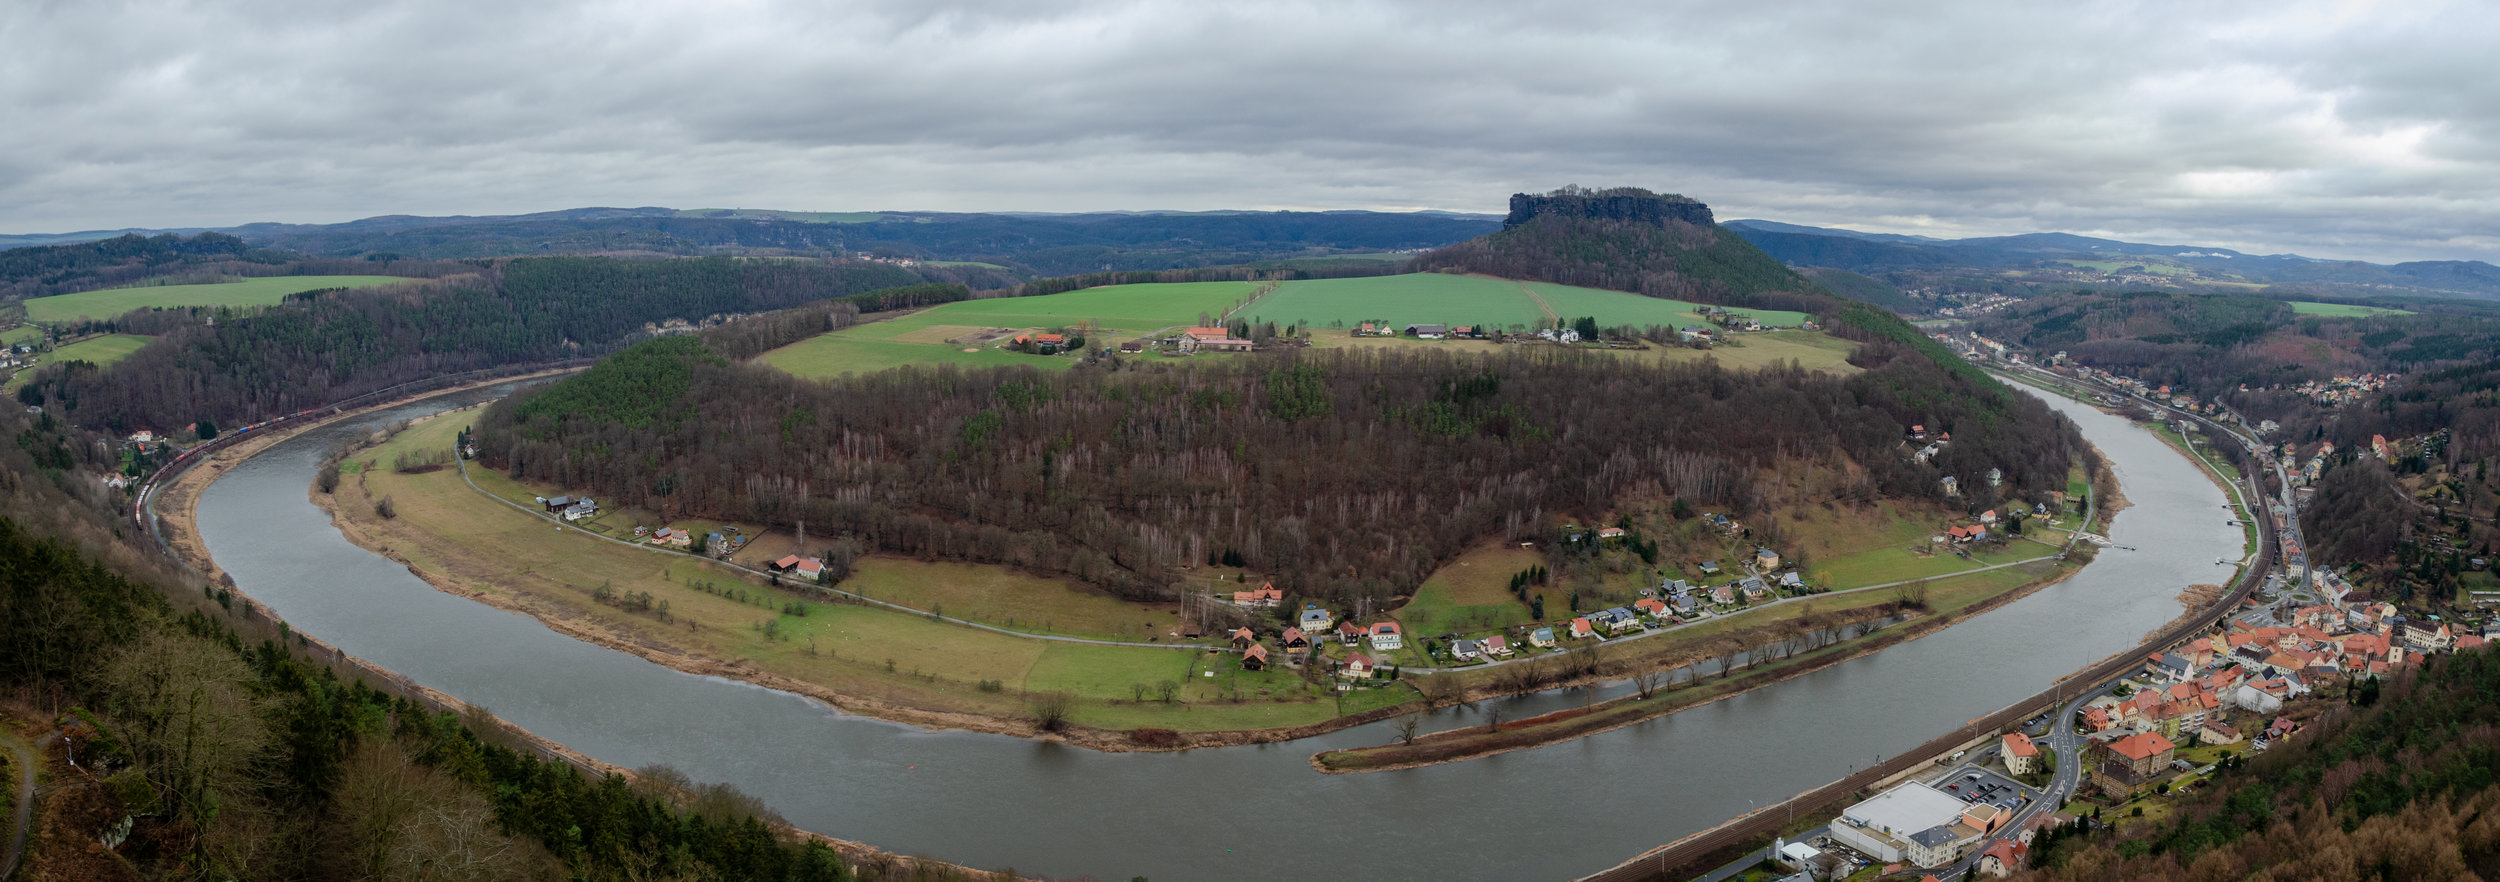 The panoramic view from the top